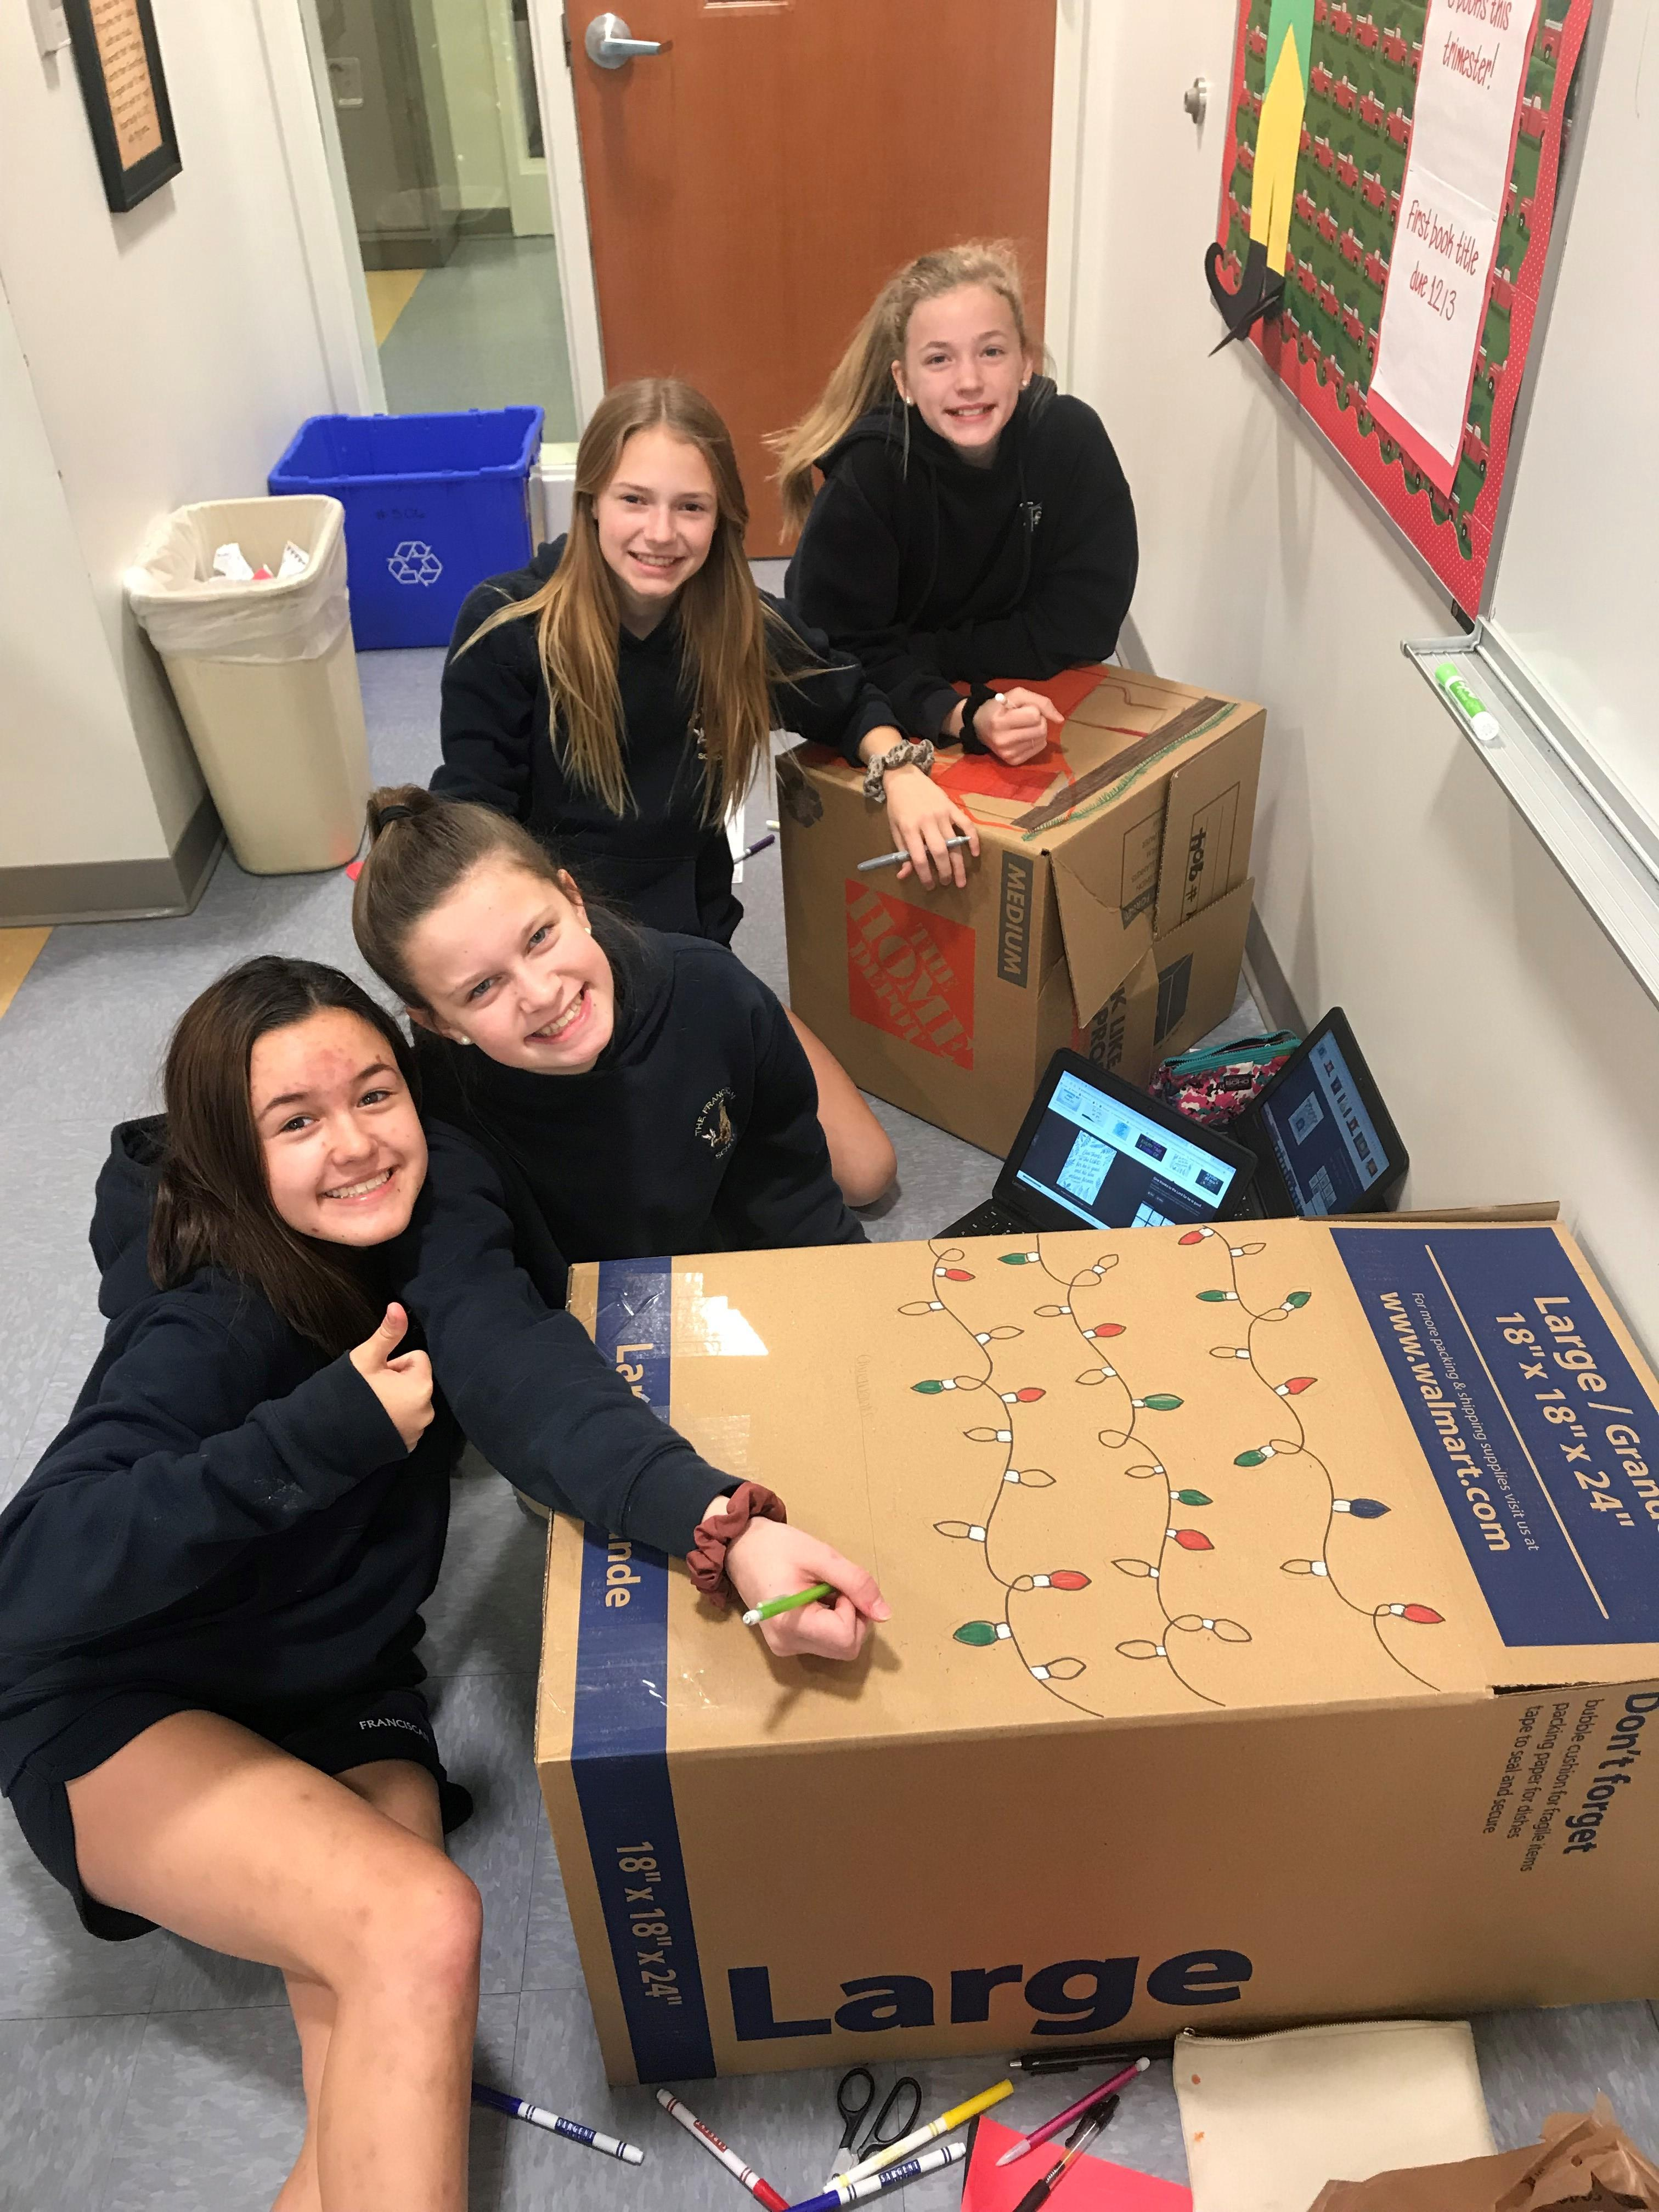 Students are decorating boxes that went to the class' adopted family during the holidays.